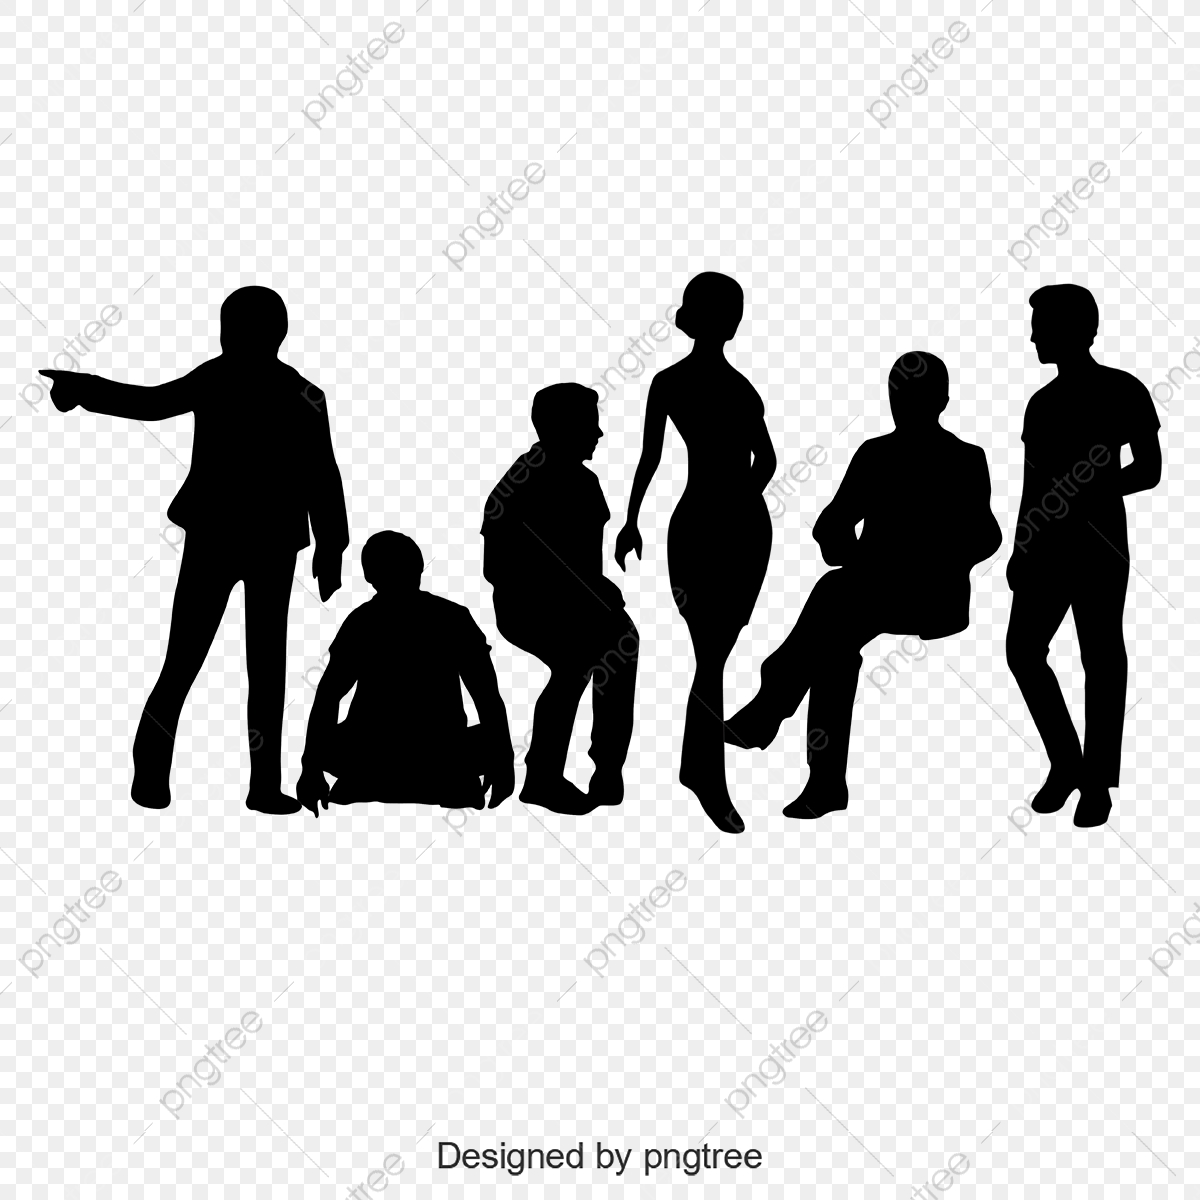 Vector Black Sports People Silhouette Sports Clipart People Clipart Black Sports People Png And Vector With Transparent Background For Free Download